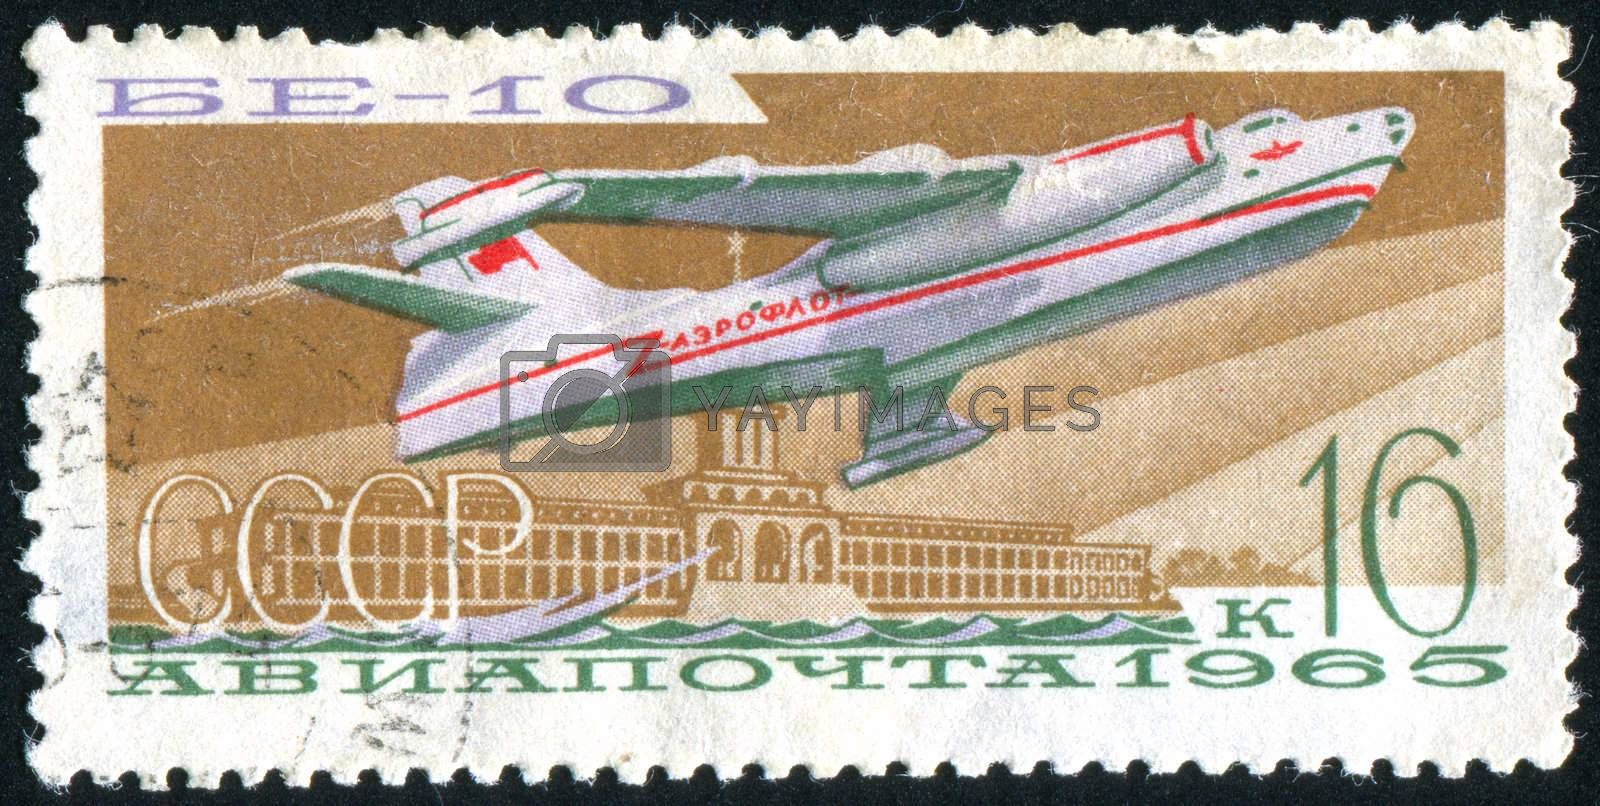 RUSSIA - CIRCA 1965: stamp printed by Russia, shows plane, circa 1965.